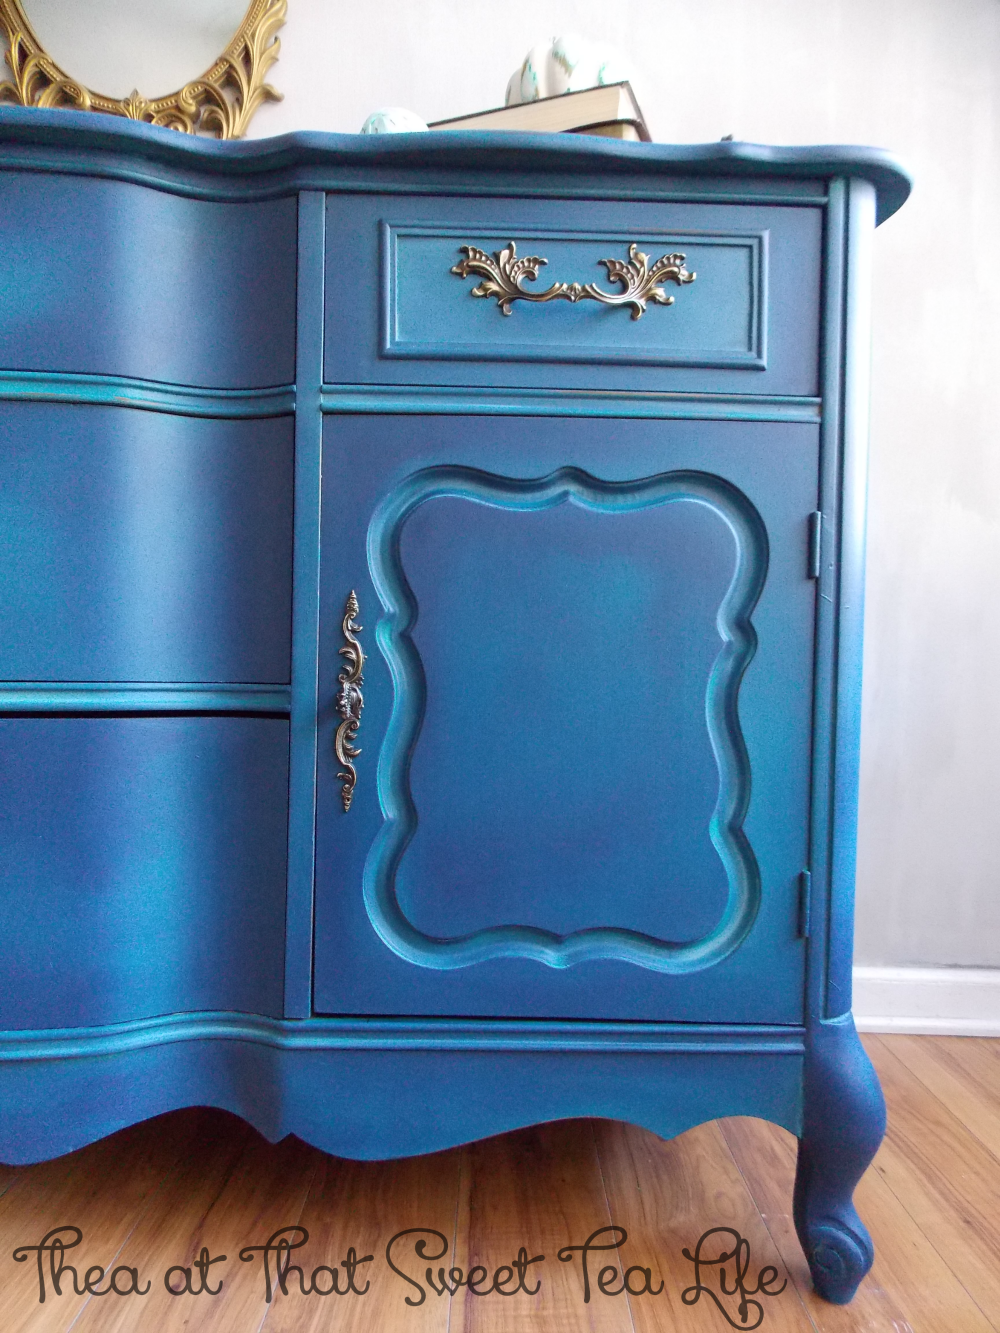 Blue Painted Furniture: Your Blended Paint Inspiration by That Sweet Tea Life | Close Right Offset | Shaded Furniture| How to create a blended Paint Furniture Finish | Blended Painted Furniture Ideas | Furniture Painting Tips | How to paint Furniture | Blending Blue Furniture Makeover | Layered Paint | Blended Painting | Dresser Makeover | Furniture DIY | #paintblending | #blendedpaintfinish | #blendedfurniturepaint